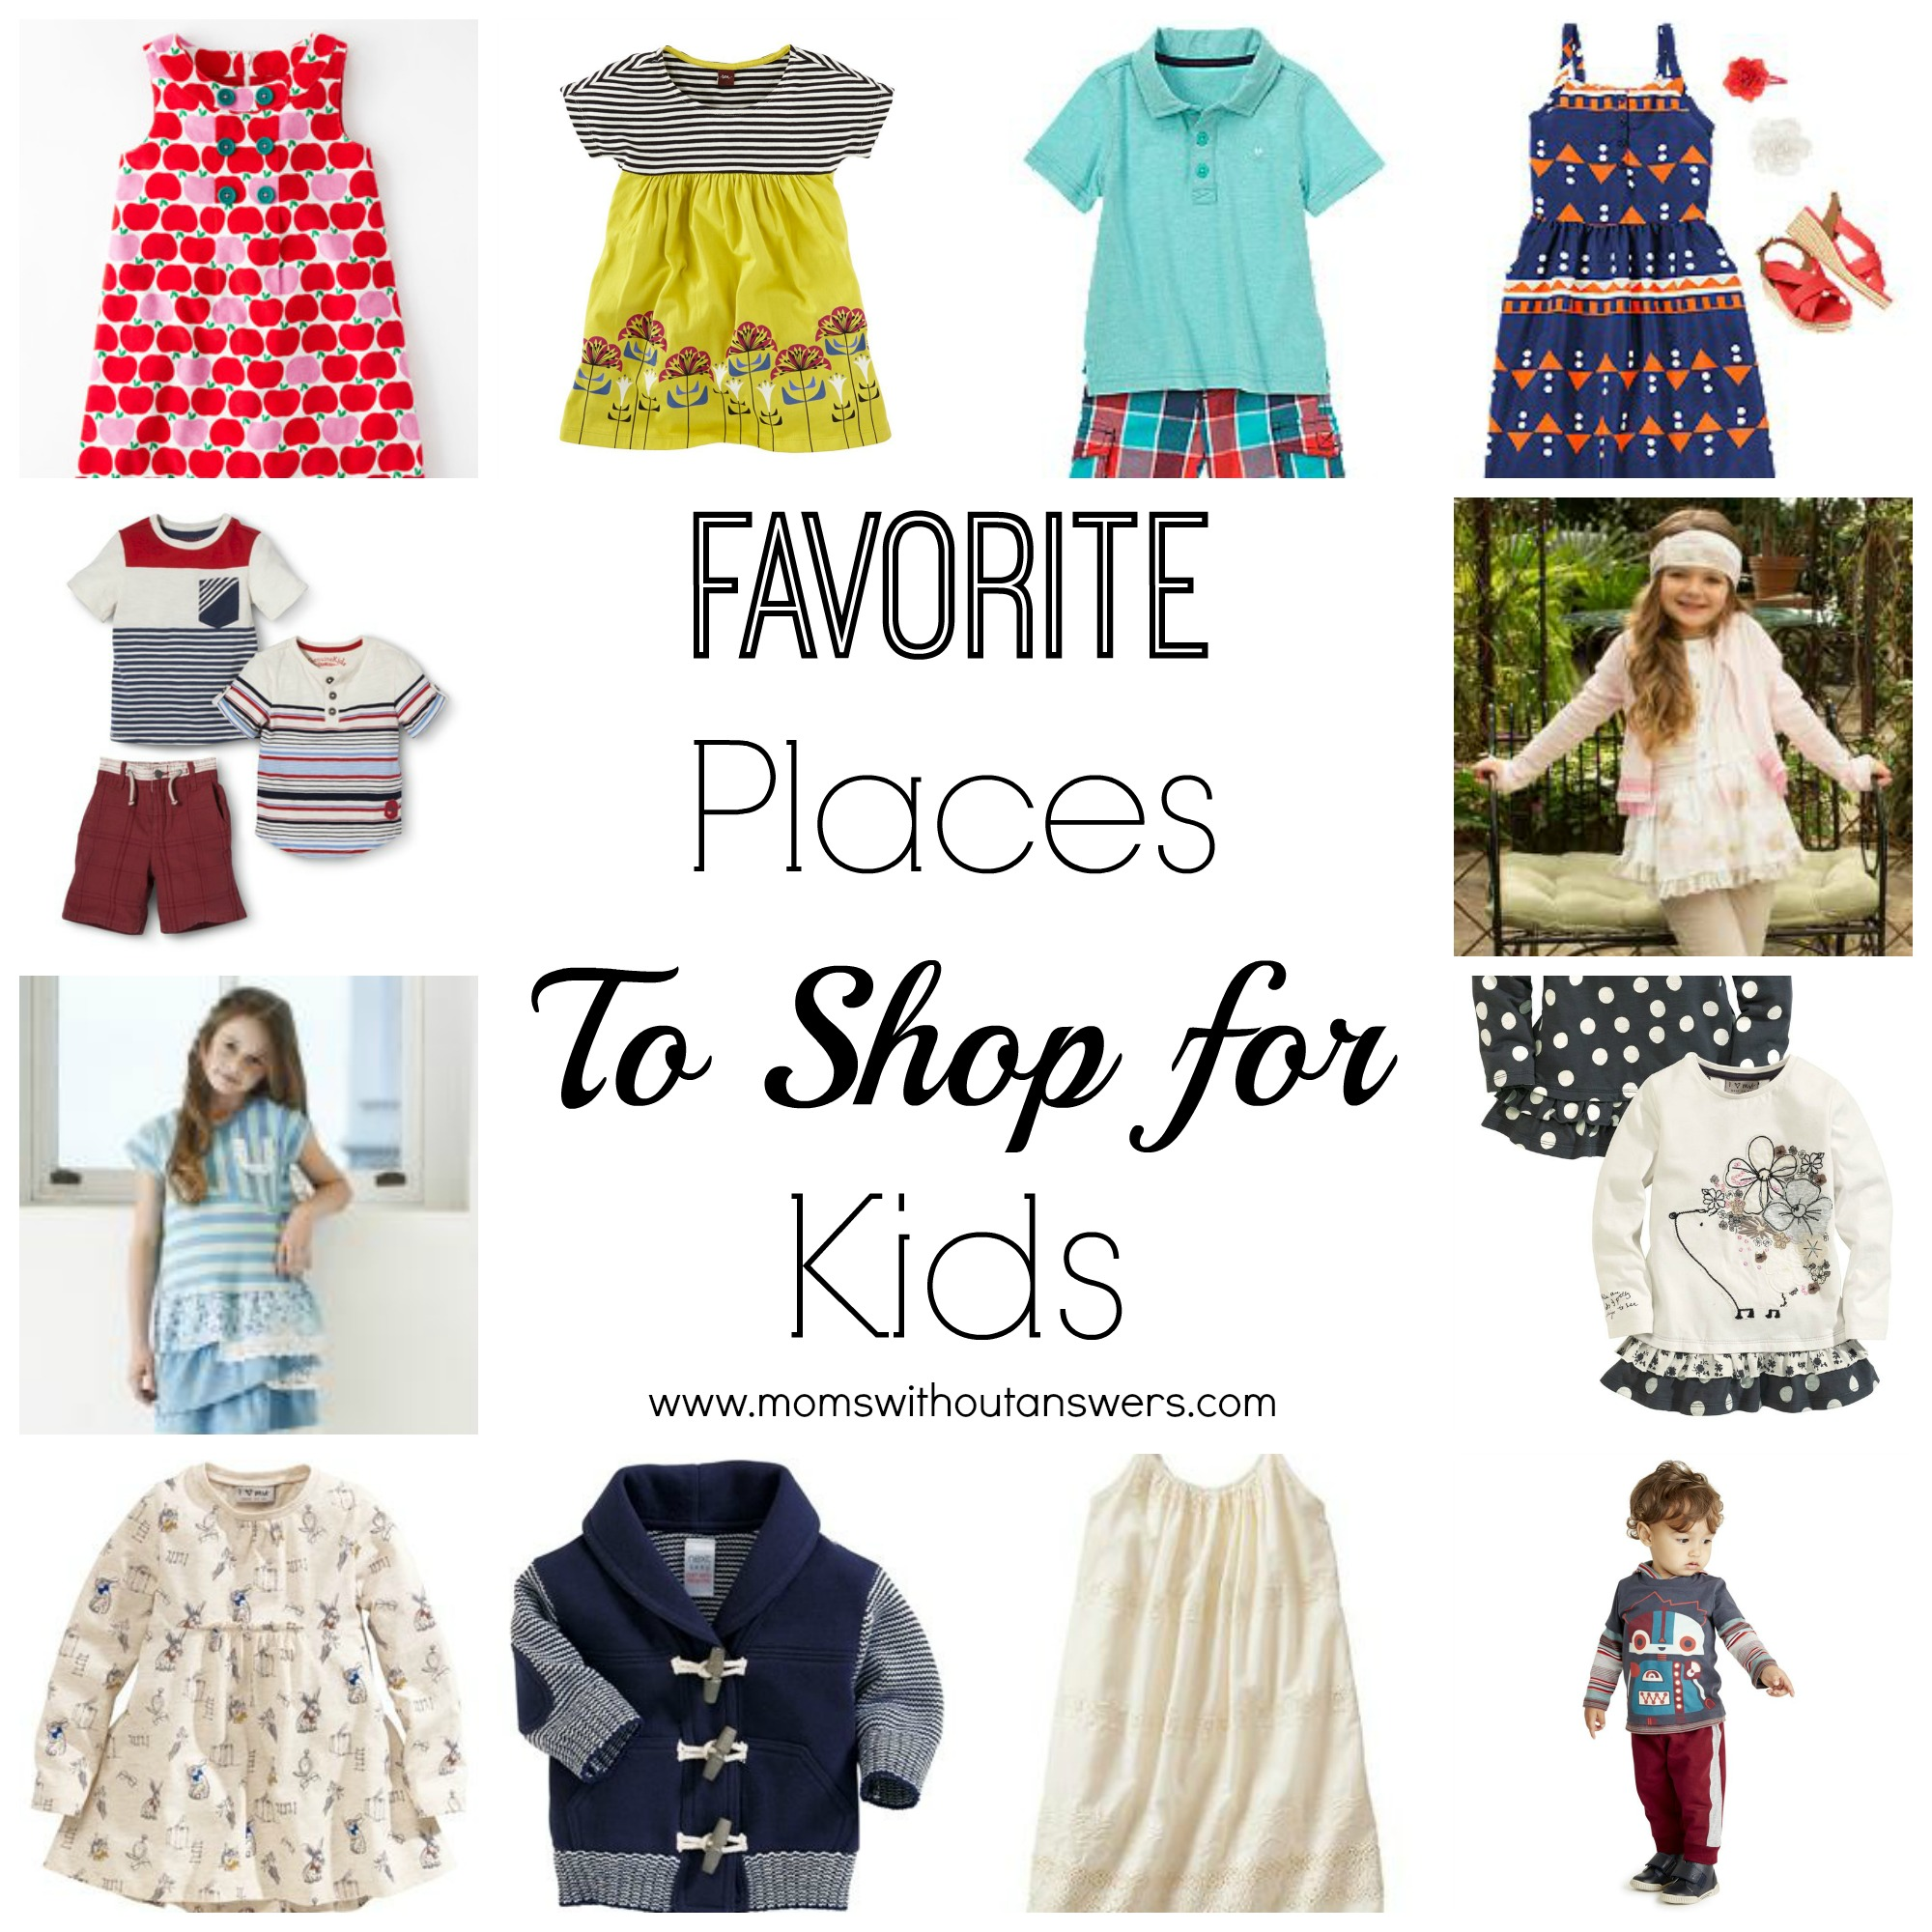 Favorite Places to Shop for Kids